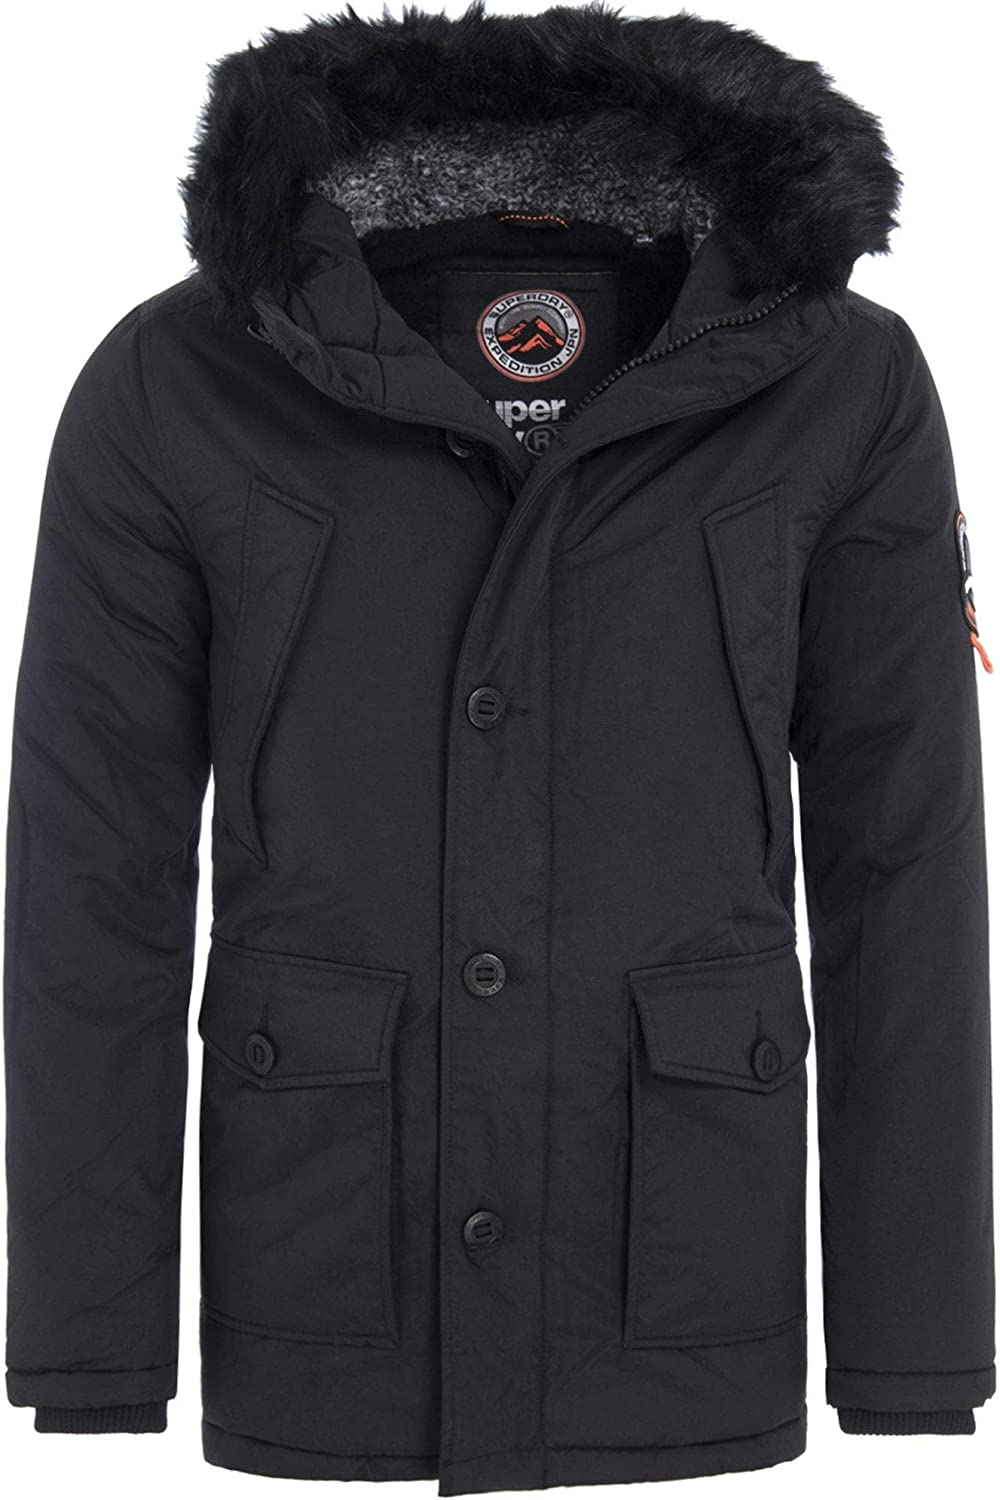 TALLA XXL. Superdry Parka Everest Negro